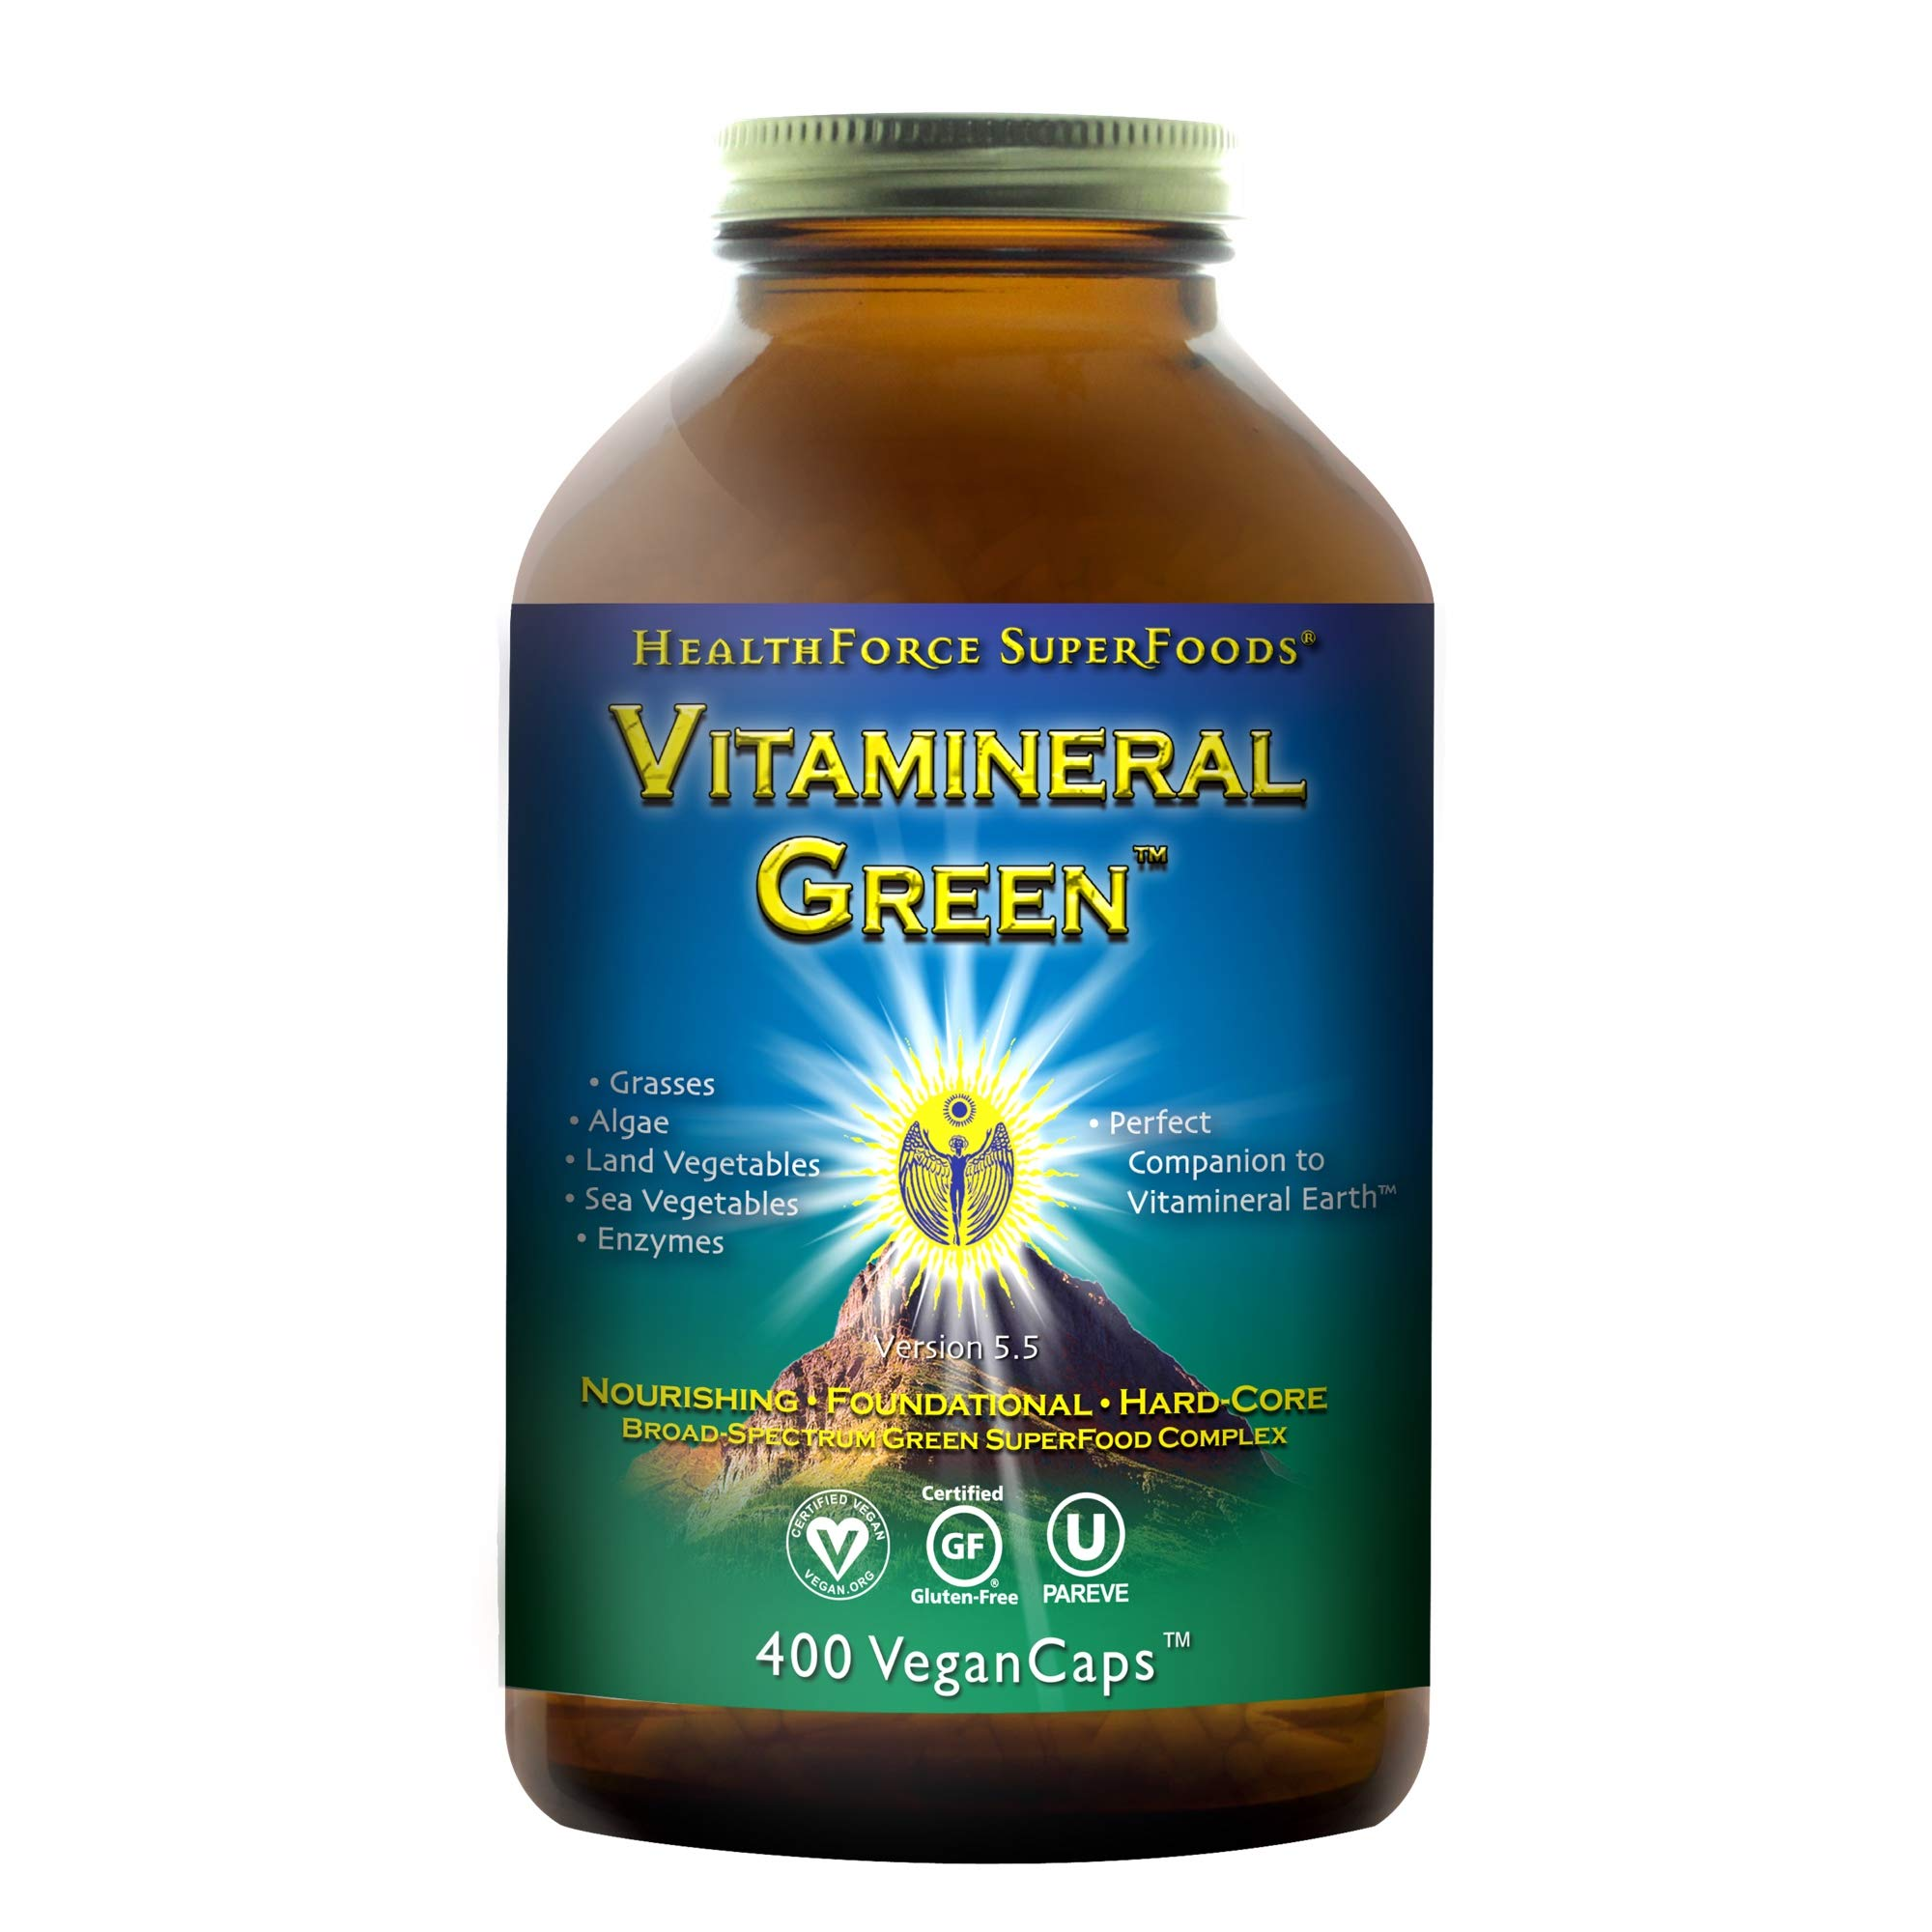 HealthForce SuperFoods Vitamineral Green - 400 Vegan Capsules - All Natural Green Superfood Complex with Vitamins, Minerals, Amino Acids & Protein - Vegan, Gluten Free - 50 Servings by HEALTHFORCE SUPERFOODS